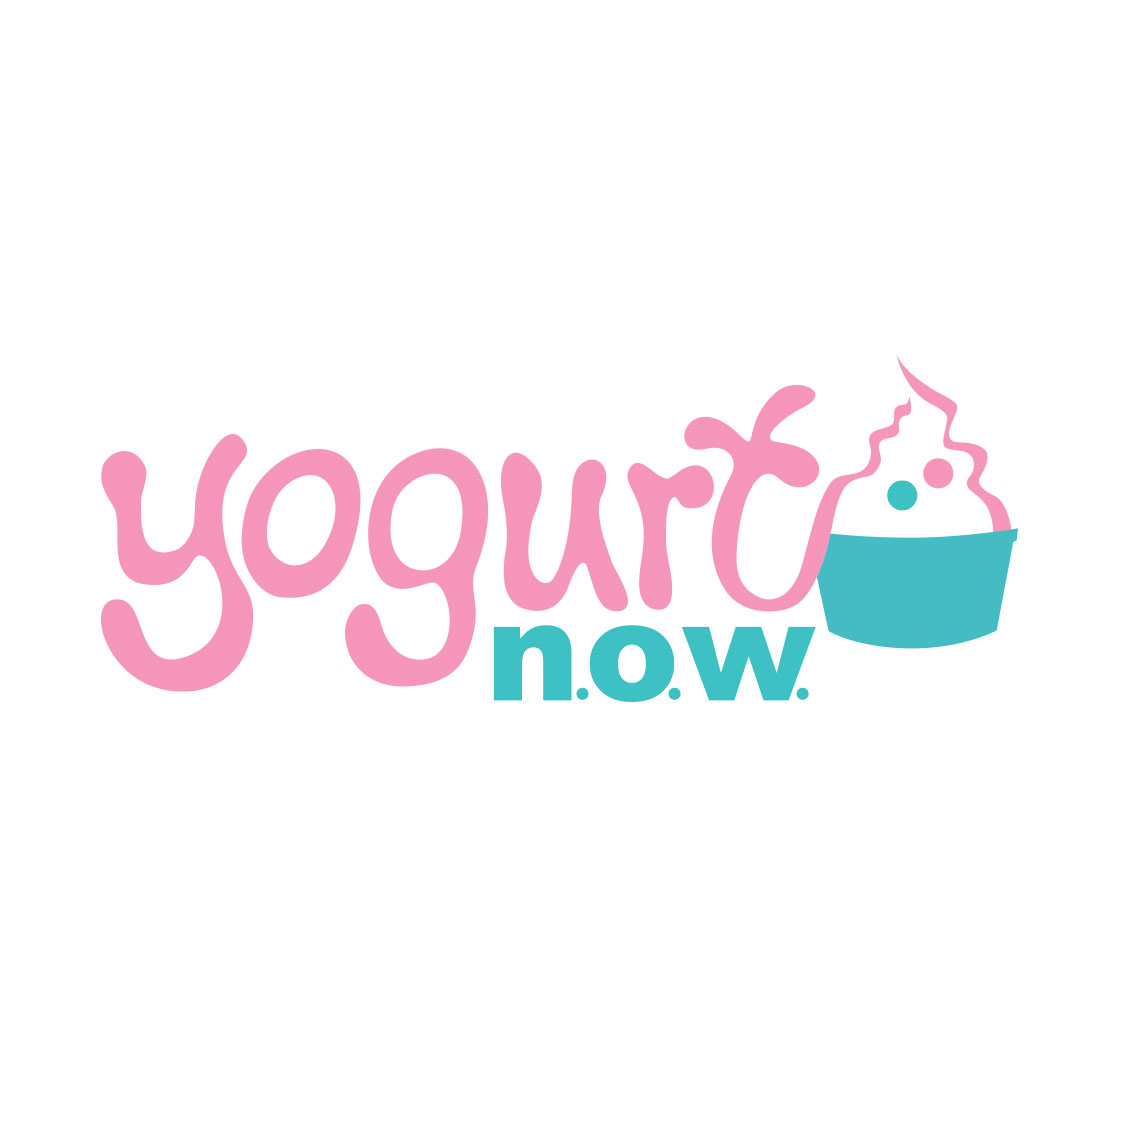 yogurt n.o.w. Logo